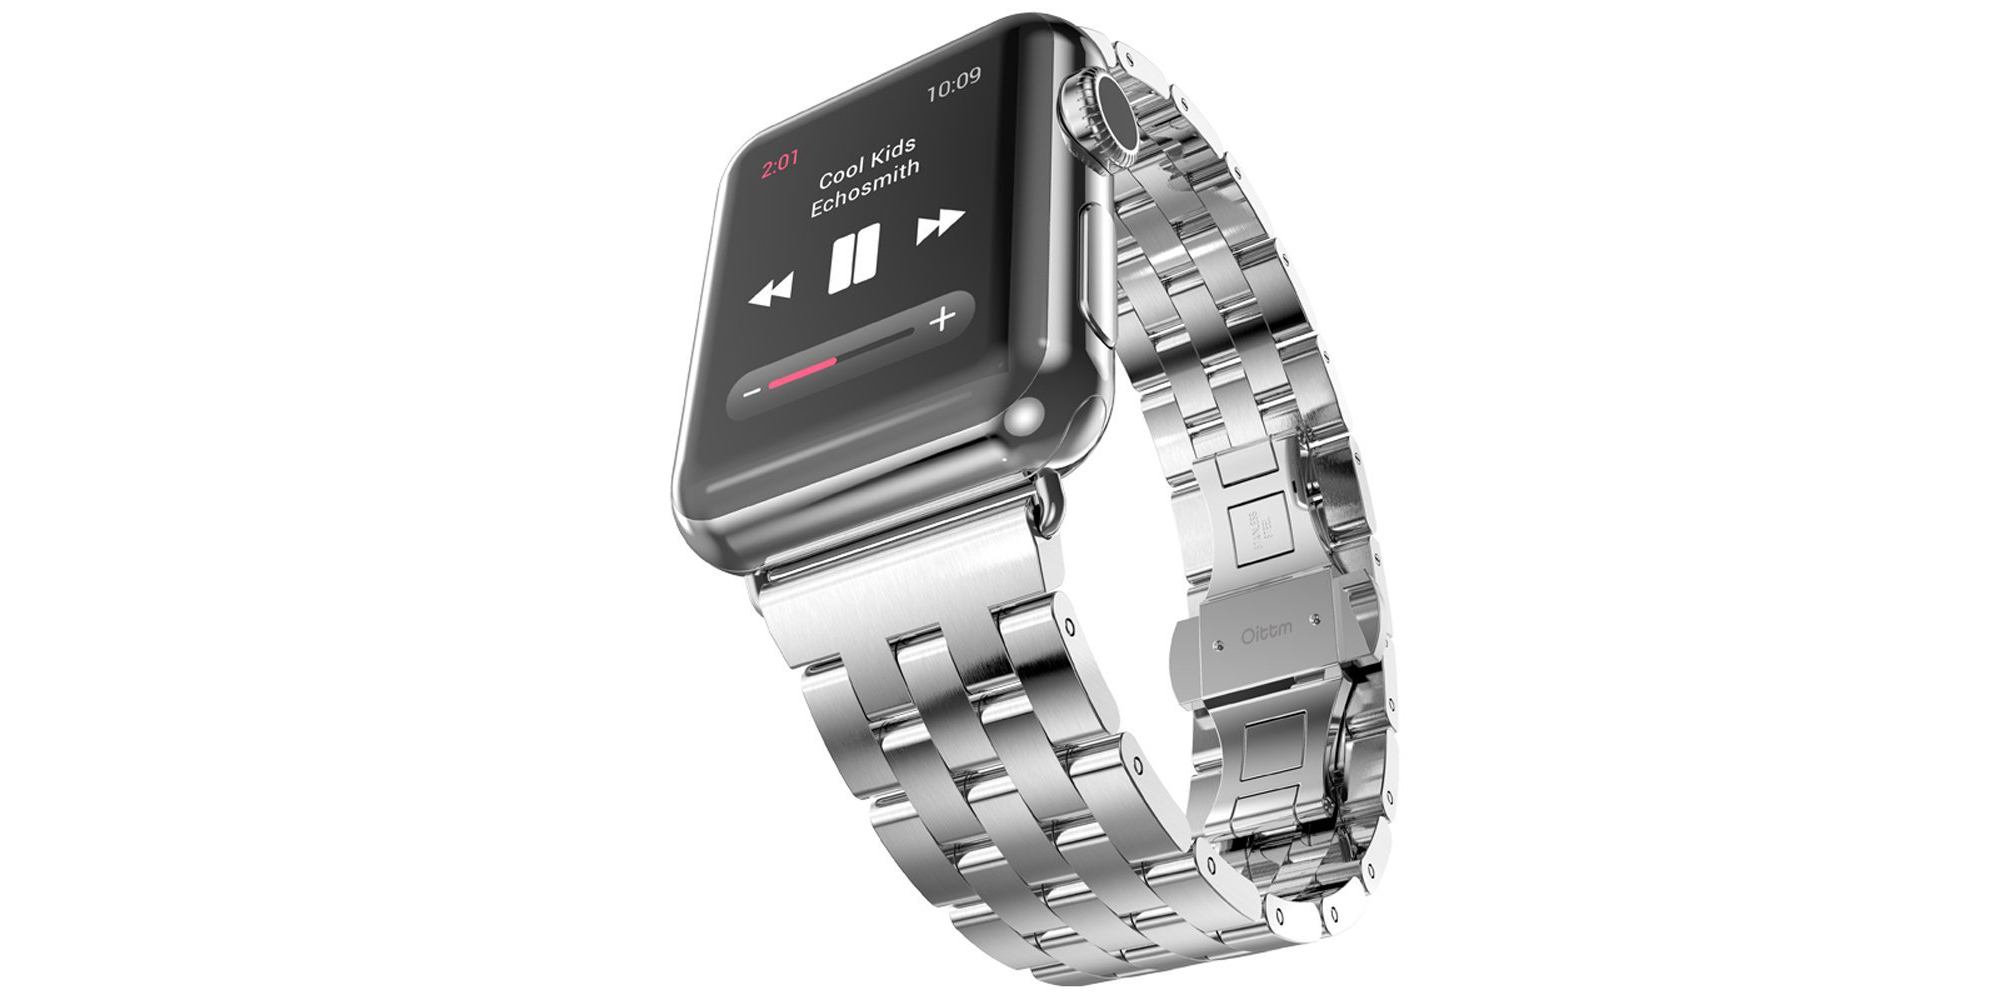 Oittm's Stainless Steel Link Bracelet adds a touch of class to the Apple Watch